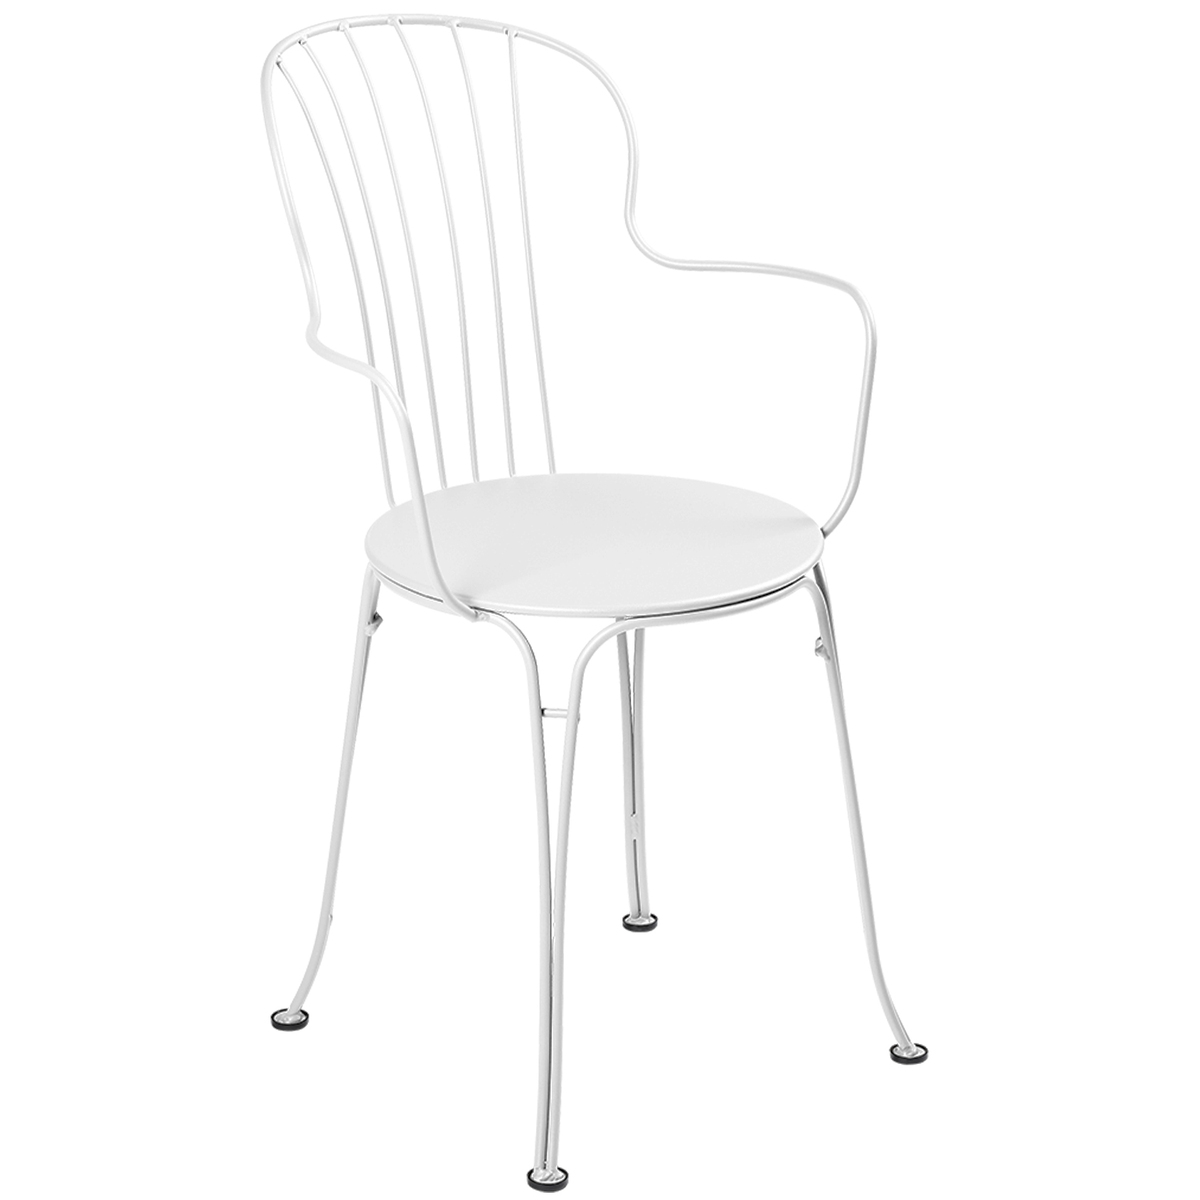 Fermob Opéra+ armchair, cotton white from Fermob